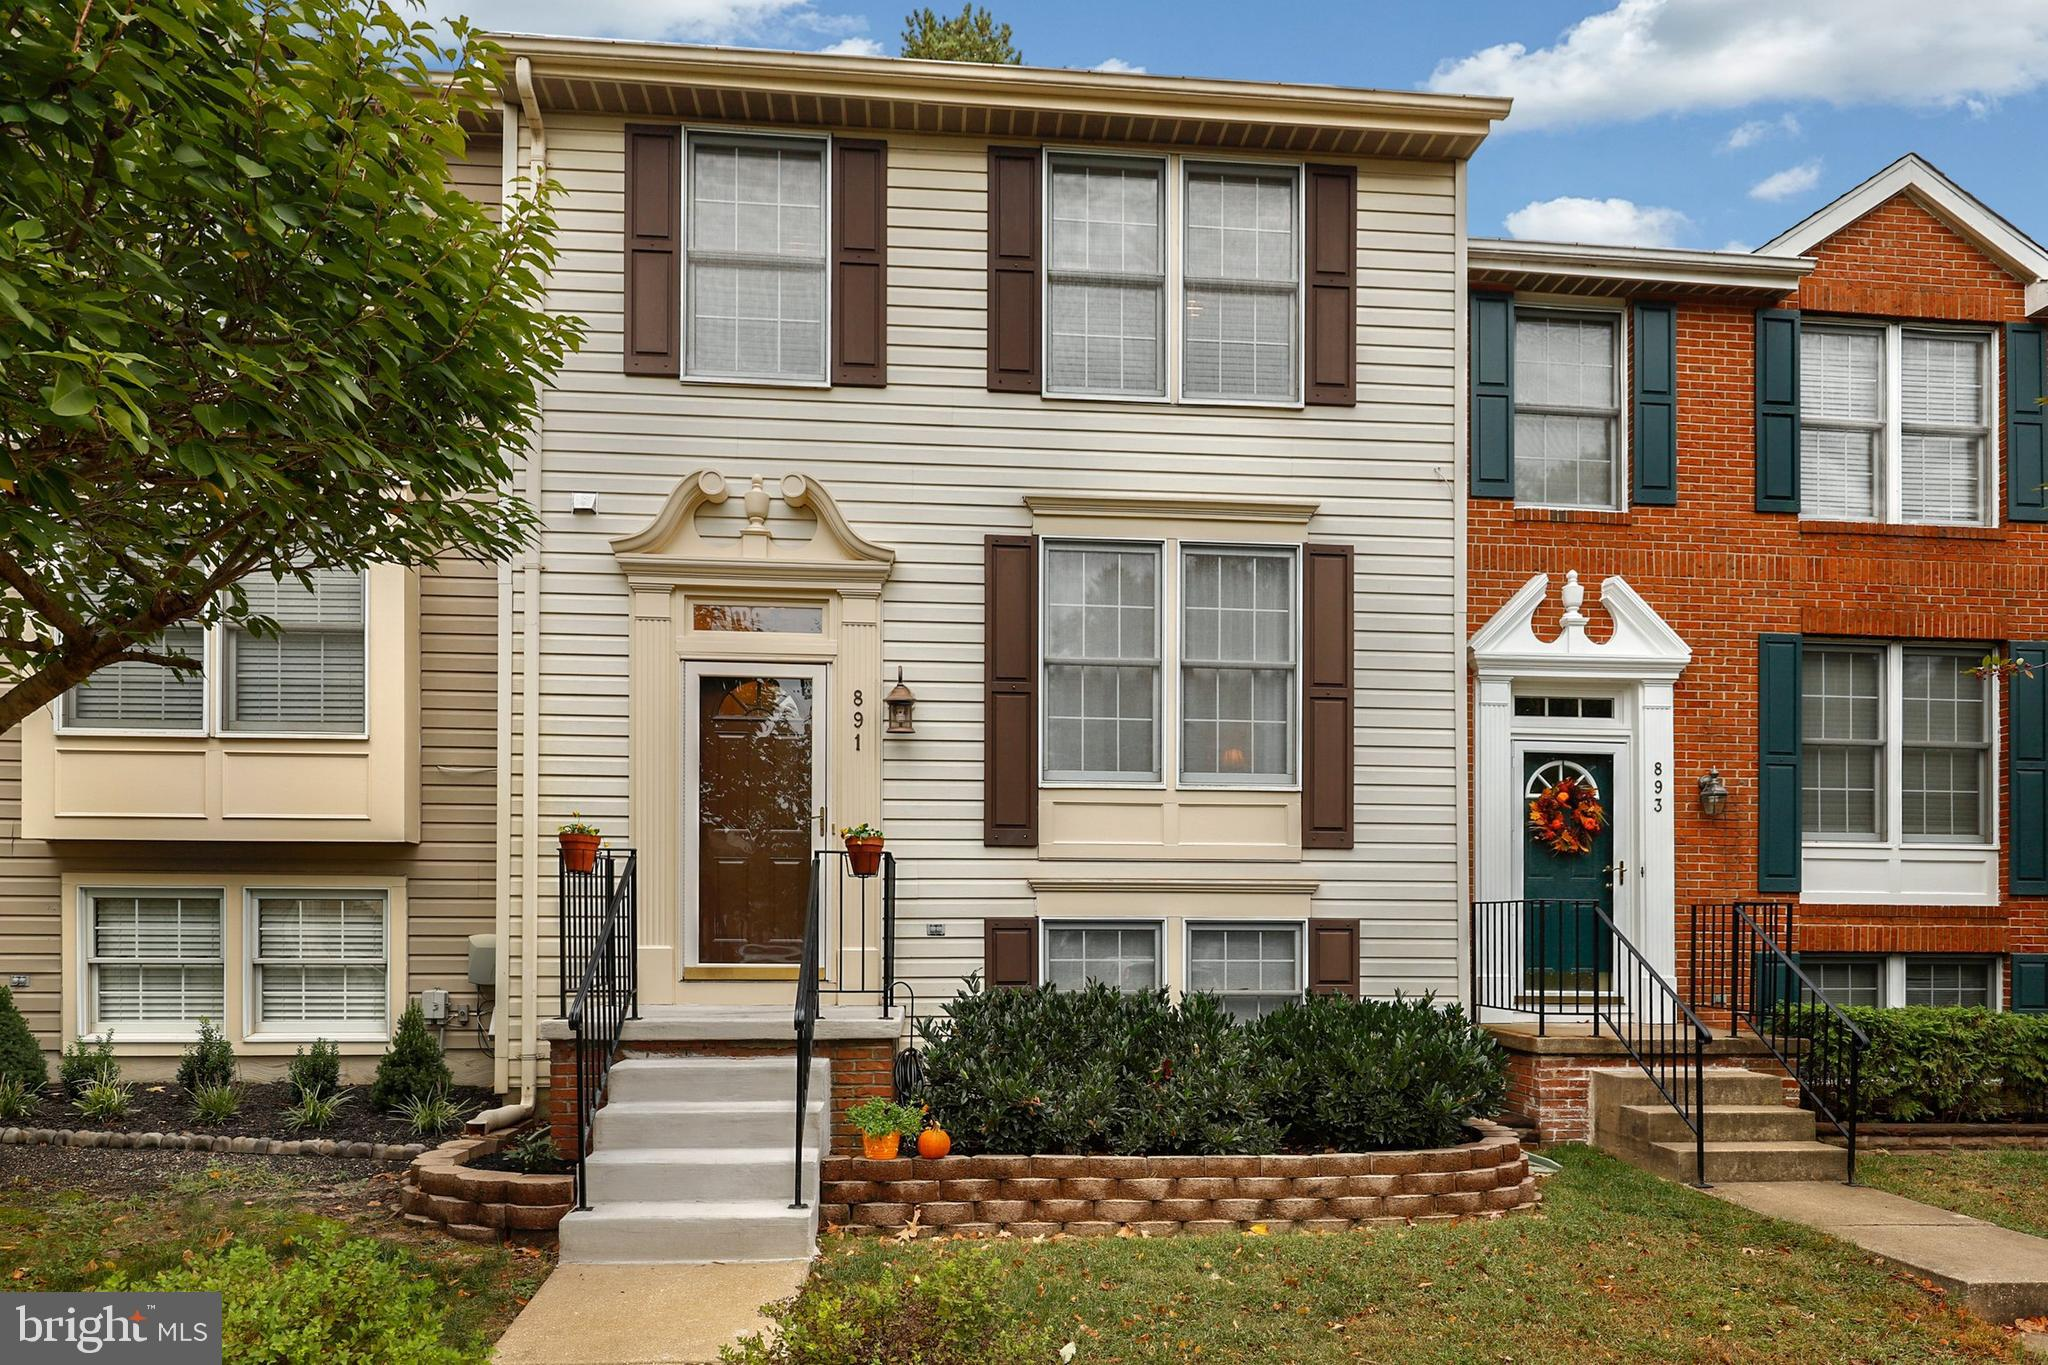 891 CHESTNUTVIEW COURT, CHESTNUT HILL COVE, MD 21226